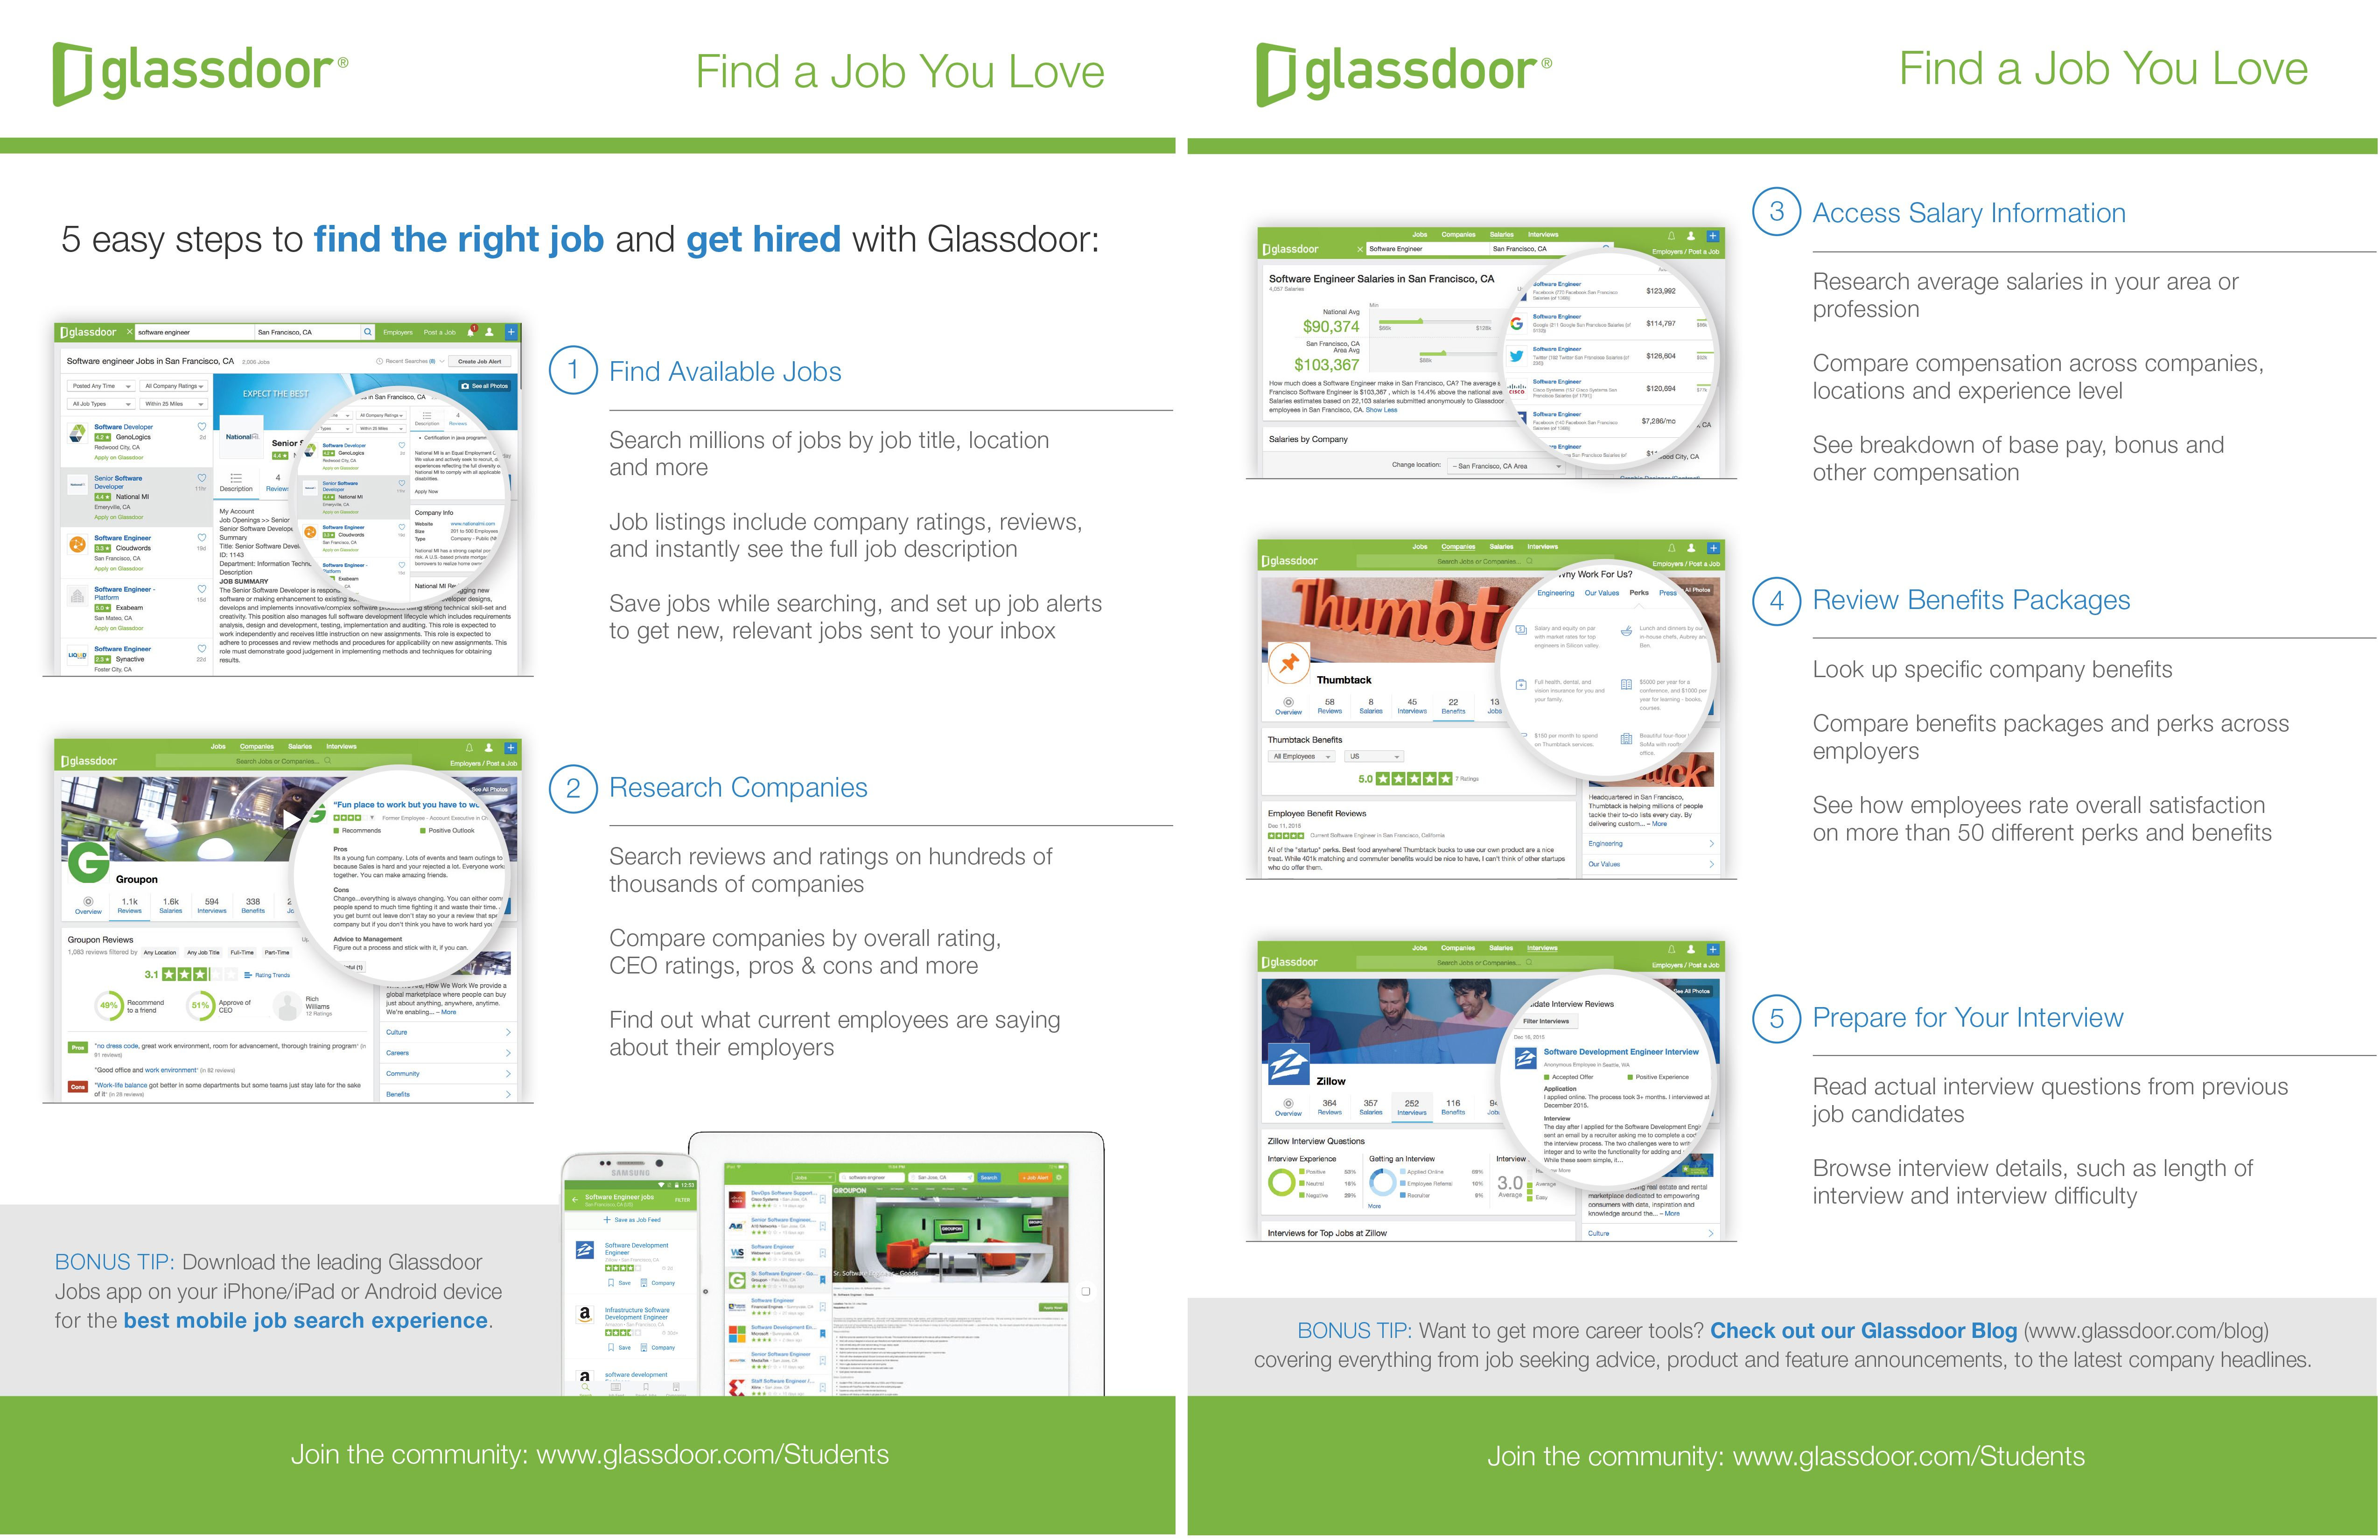 """""""Glassdoor has over 10 million Company Reviews, Salary Information and Interview Insights paired with Jobs to help you find the company and the job that you love"""""""